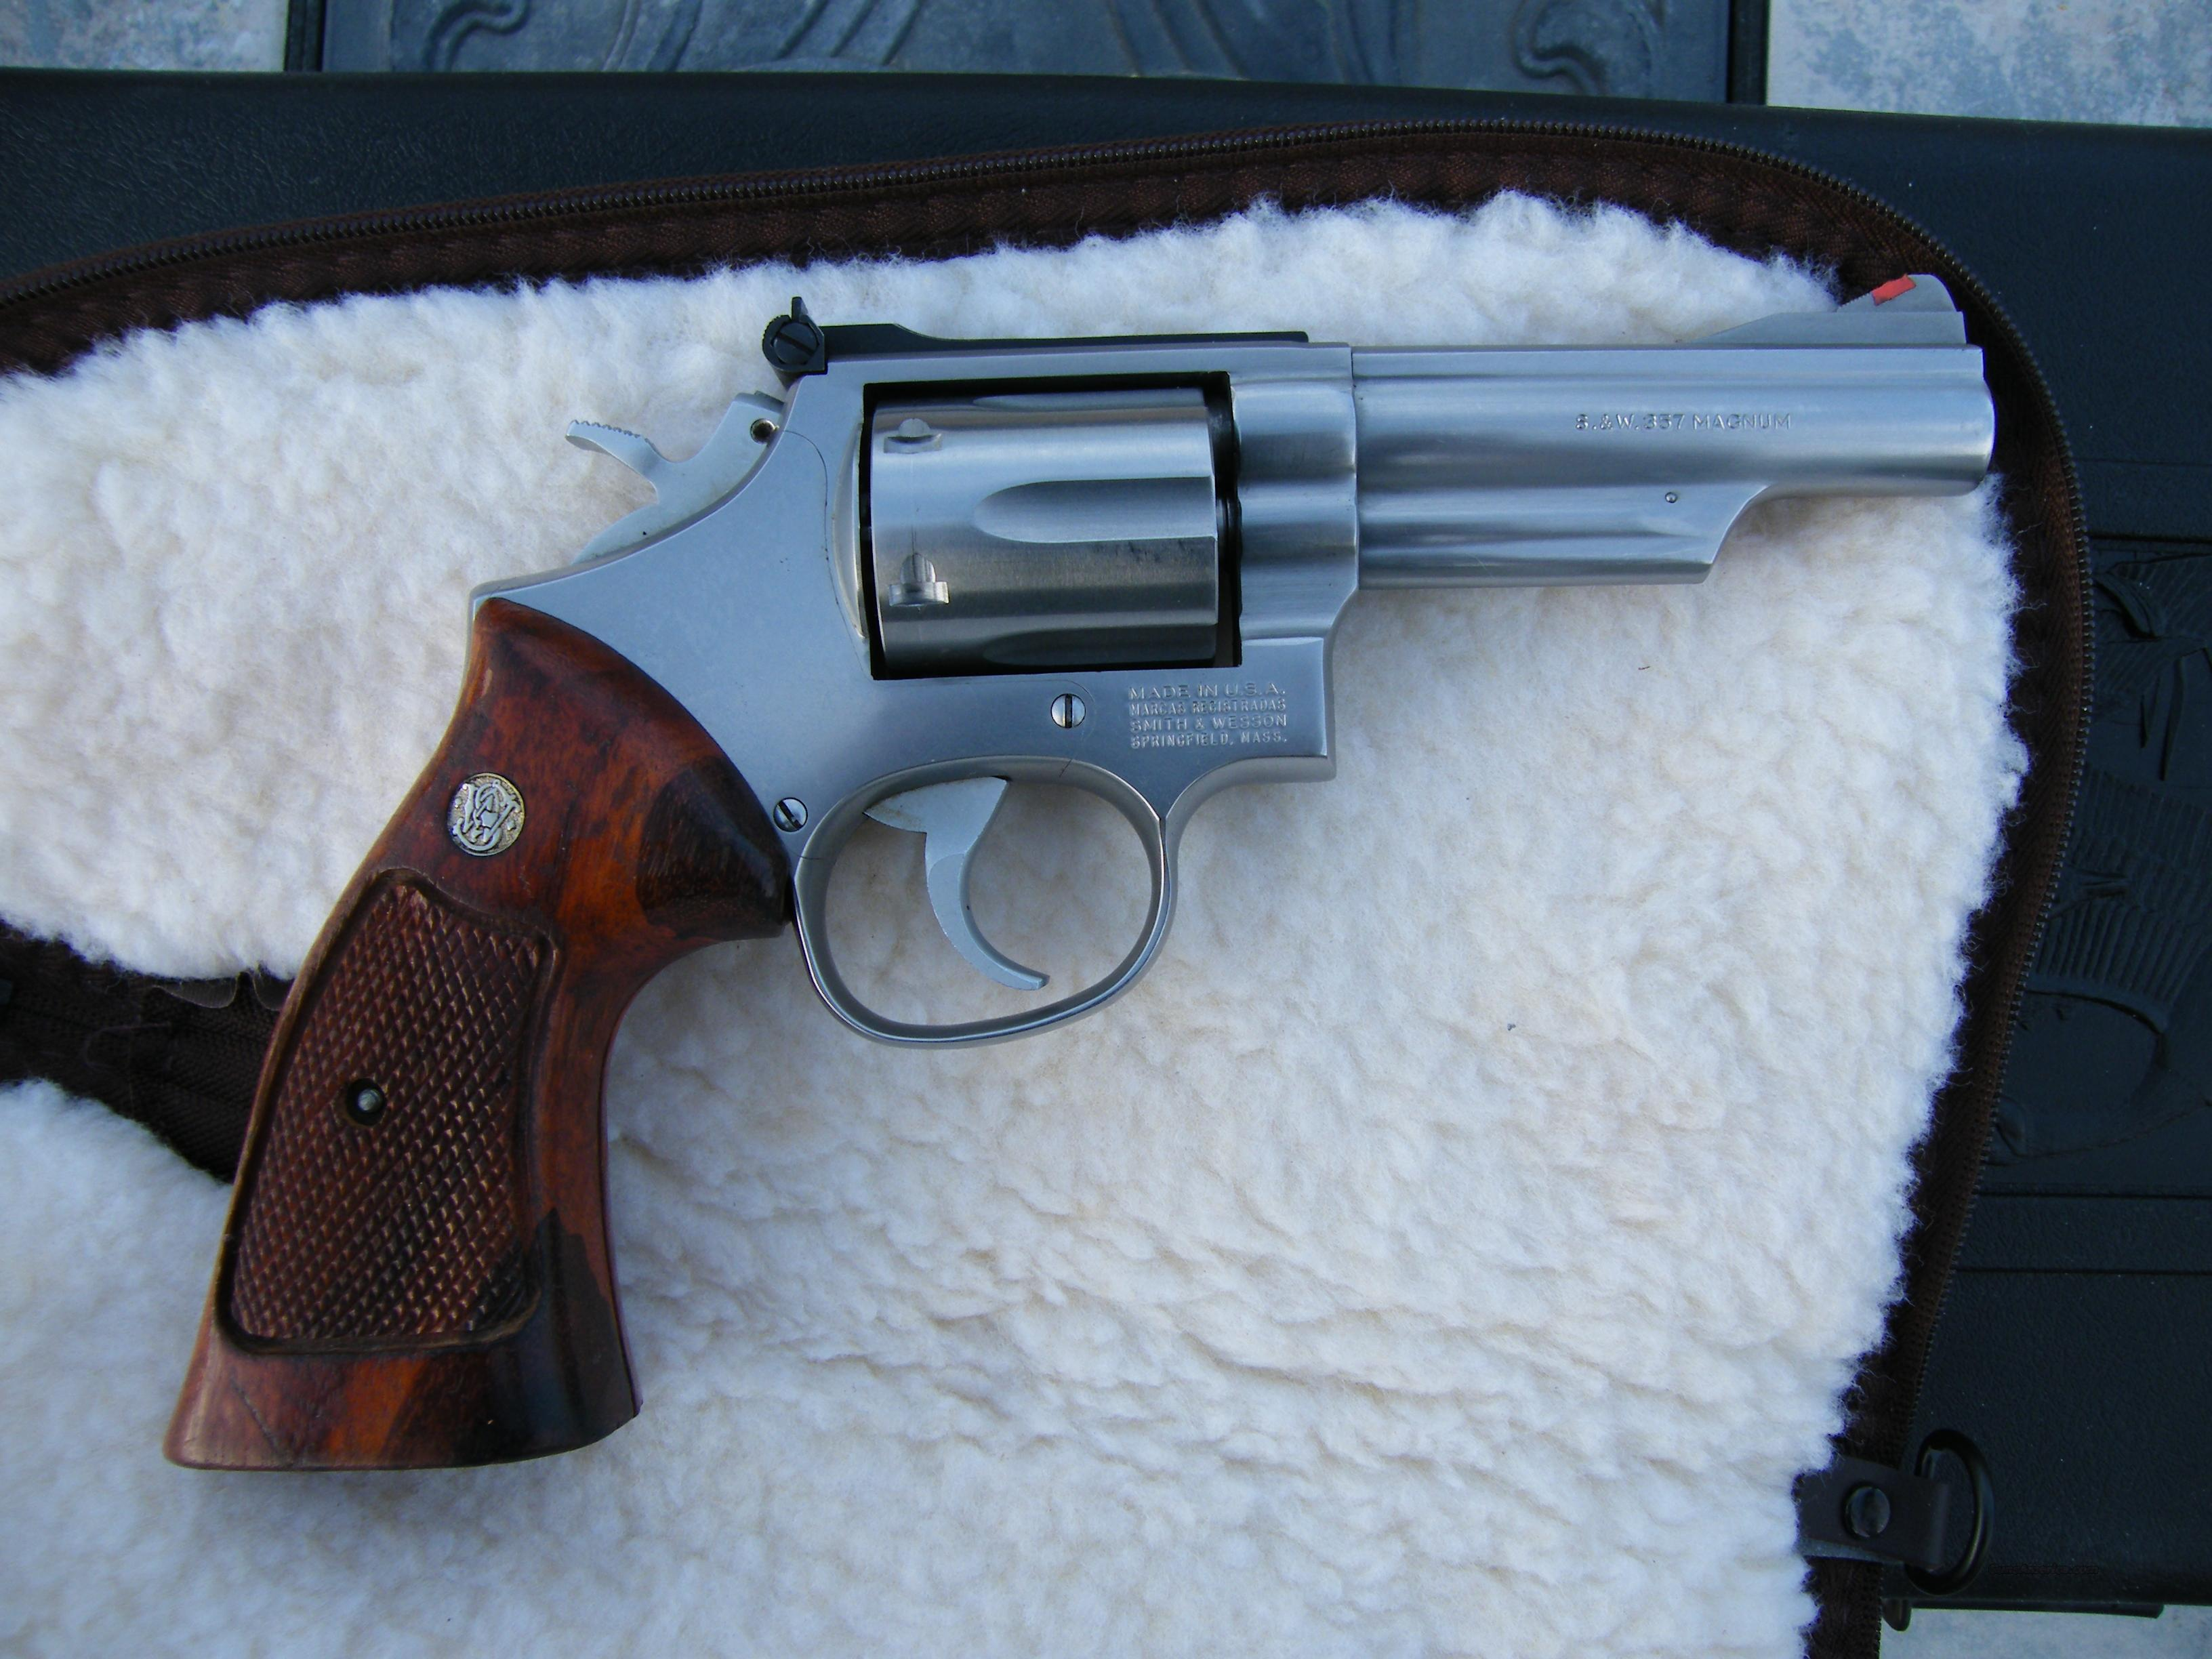 Smith Wesson 66-2 4inch  Guns > Pistols > Smith & Wesson Revolvers > Full Frame Revolver